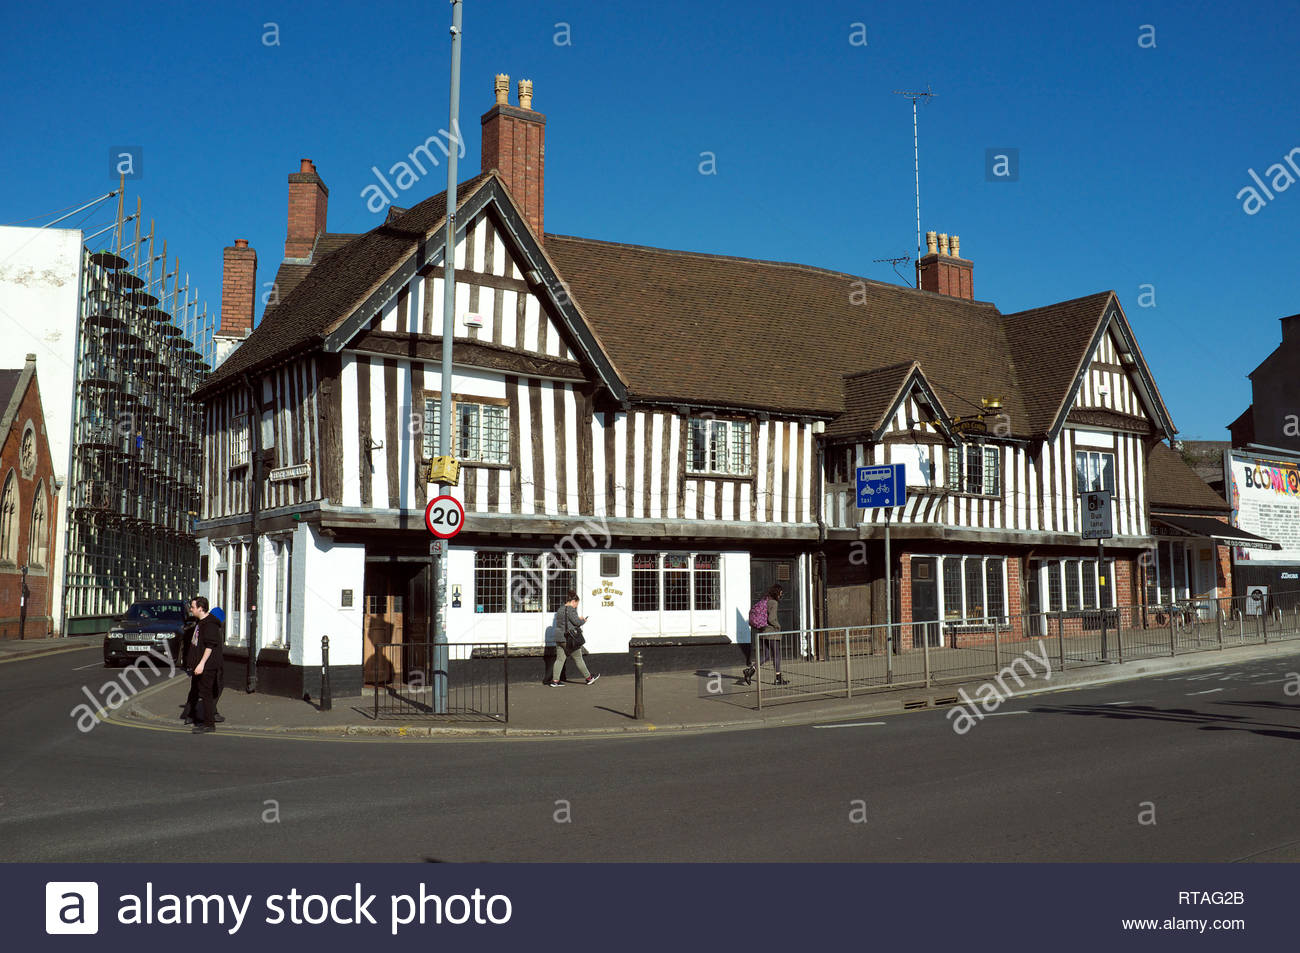 The Old Crown public house, in Digbeth, central Birmingham, West Midlands, UK. Stock Photo